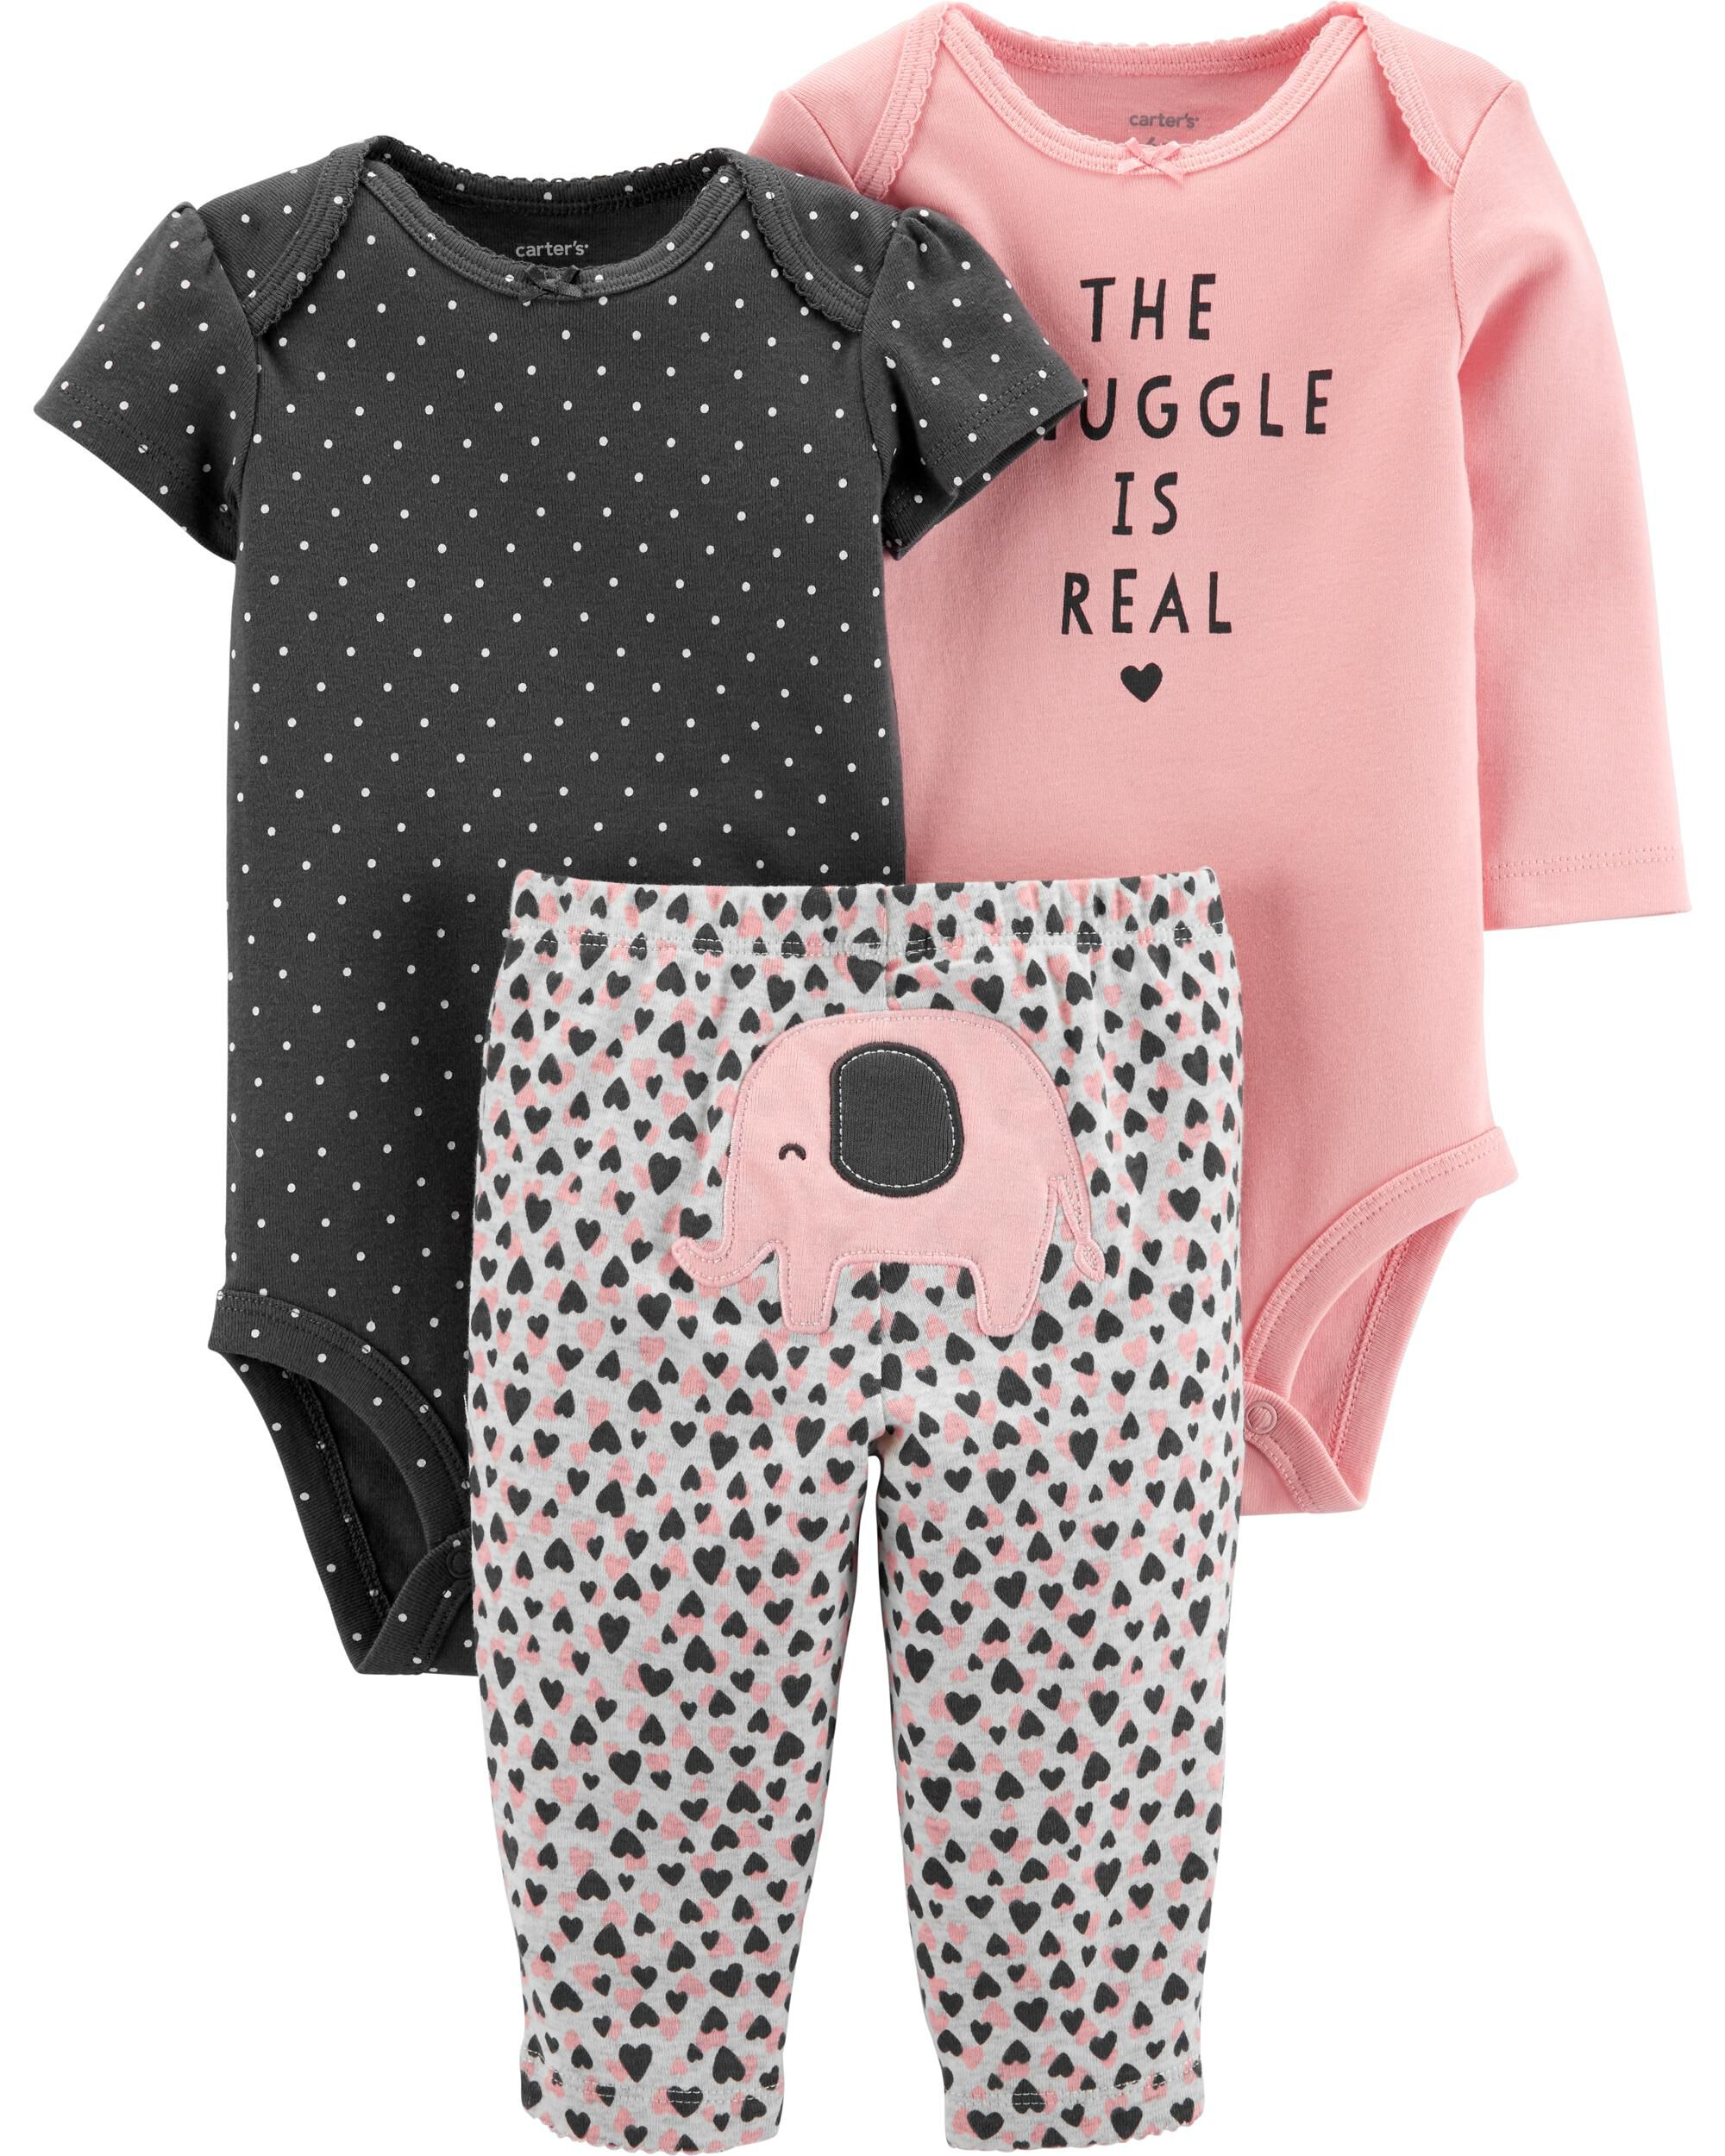 CARTER/'S 3 PIECE BABY GIRLS OUTFIT BLACK GOLD WHITE ELEPHANT TOO CUTE!!!